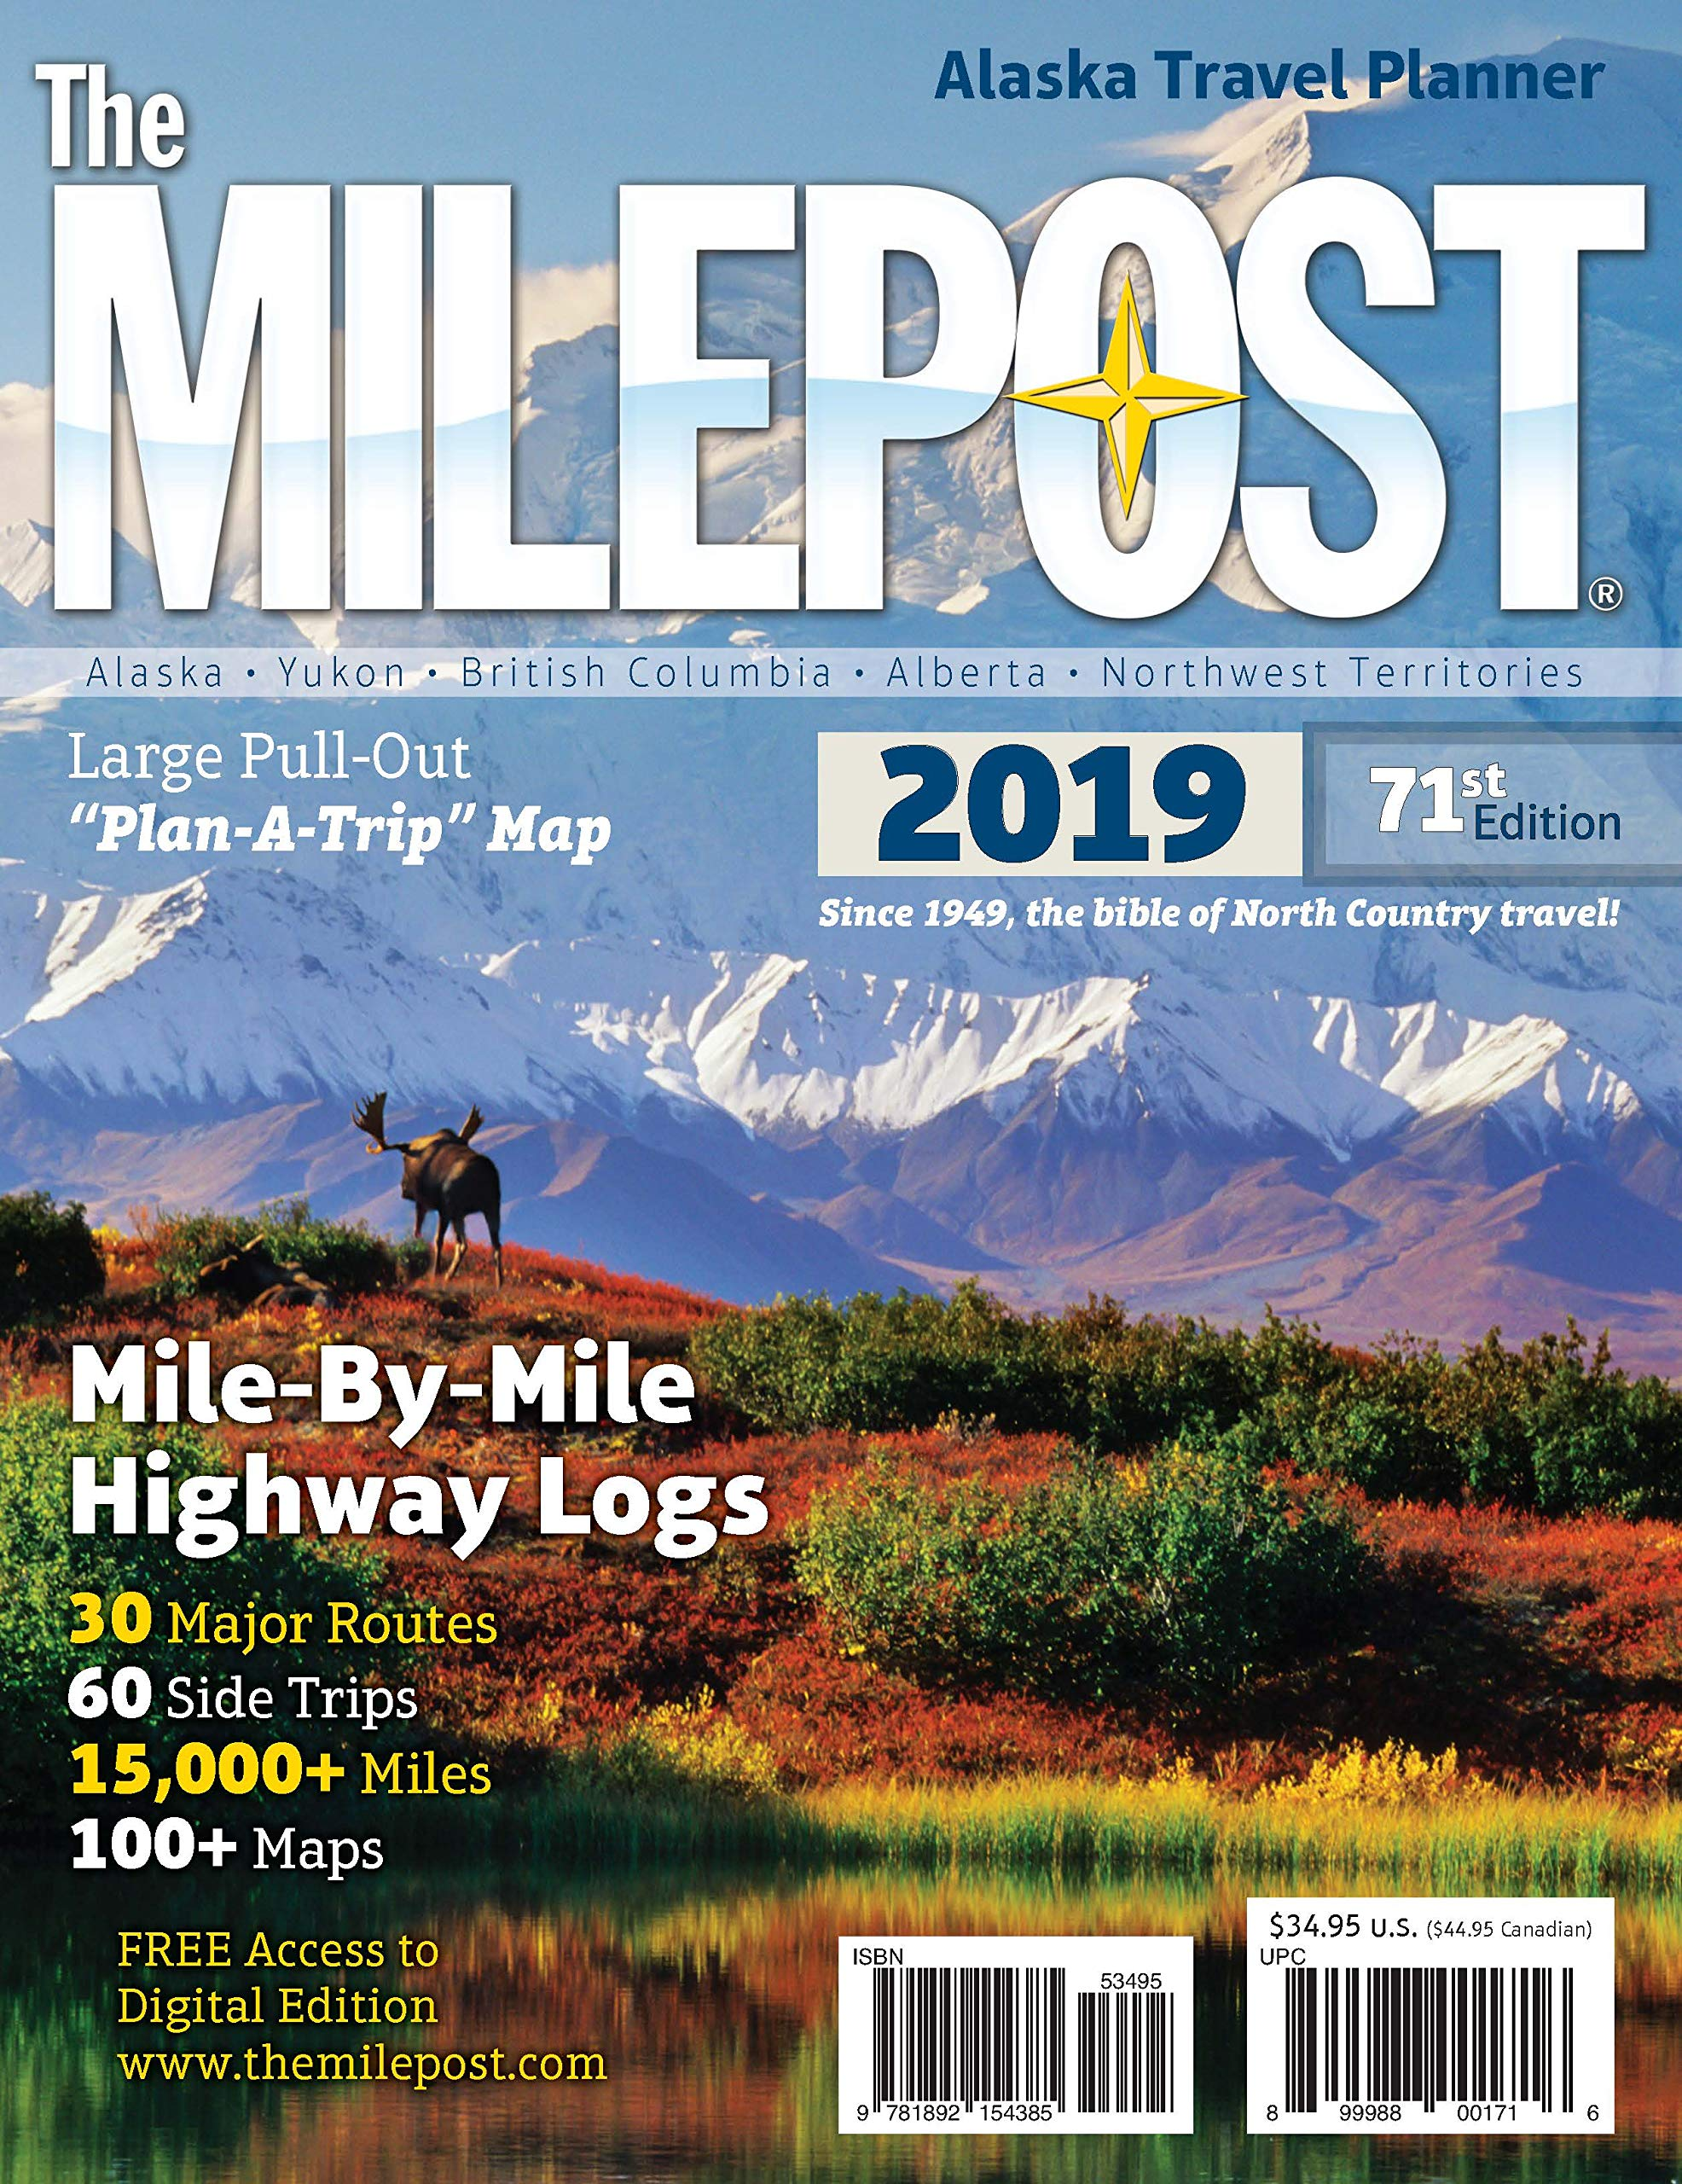 The MILEPOST 2019: Alaska Travel Planner: Kris Valencia ... on interstate 27 map, interstate 422 map, i-10 map, lincoln way map, interstate 4 map, interstate 20 map, texas map, interstate 70 map, interstate 421 map, highway 82 map, interstate 8 map, interstate 81 map, i-70 colorado road map, interstate 80 map, interstate 5 map, interstate 25 map, interstate 75 map, interstate i-10,